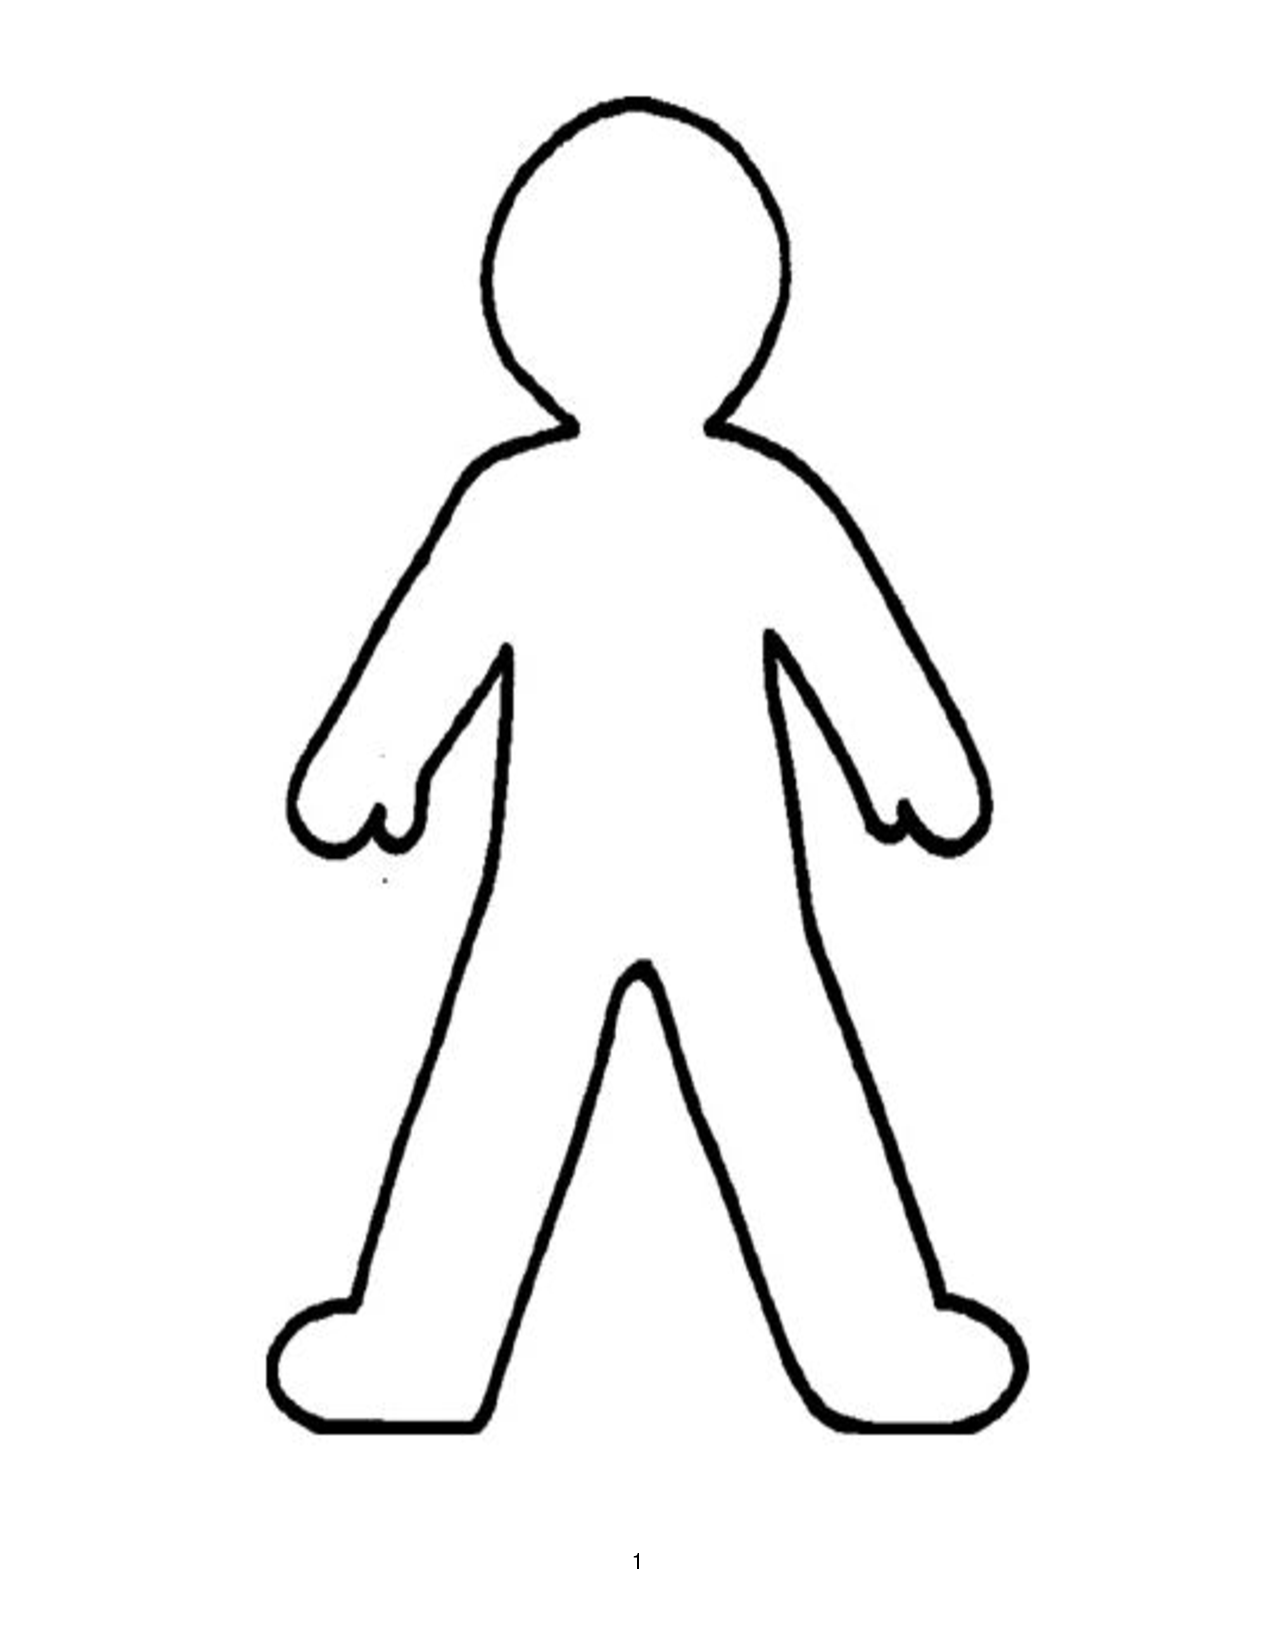 Body Outline Clipart - Clipart Kid